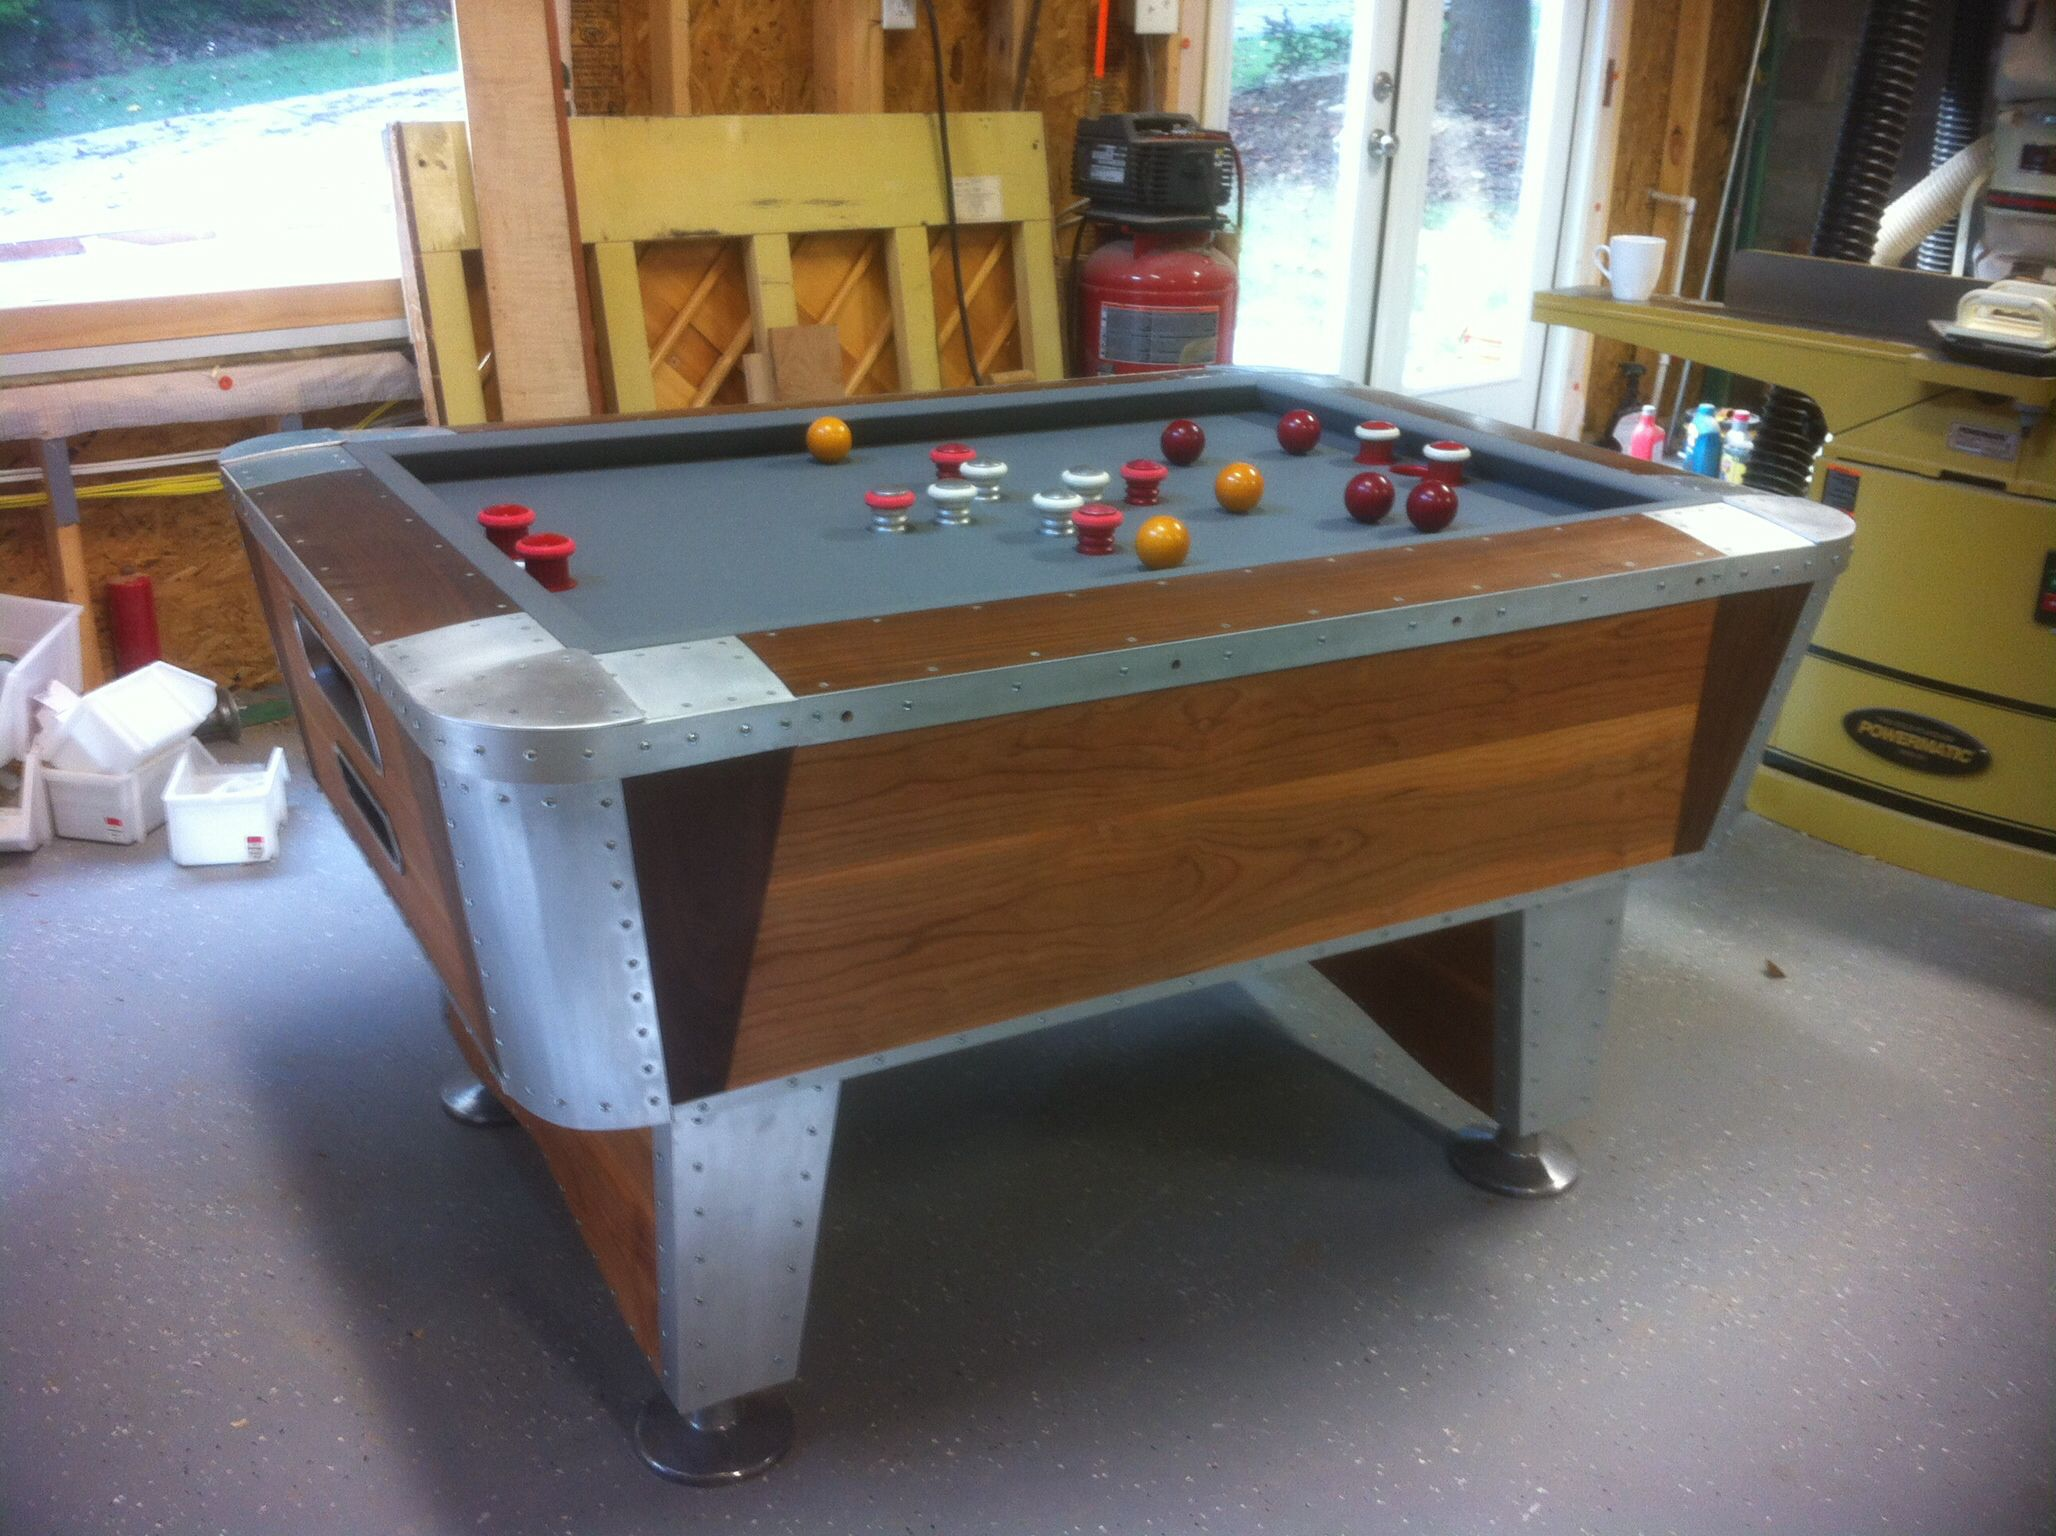 Just Finished Redoing A Lee Valley Bumper Pool Table. The Sides Are Cherry  And Black Walnut And The Side Rails And Corners Are Thick Aluminum.